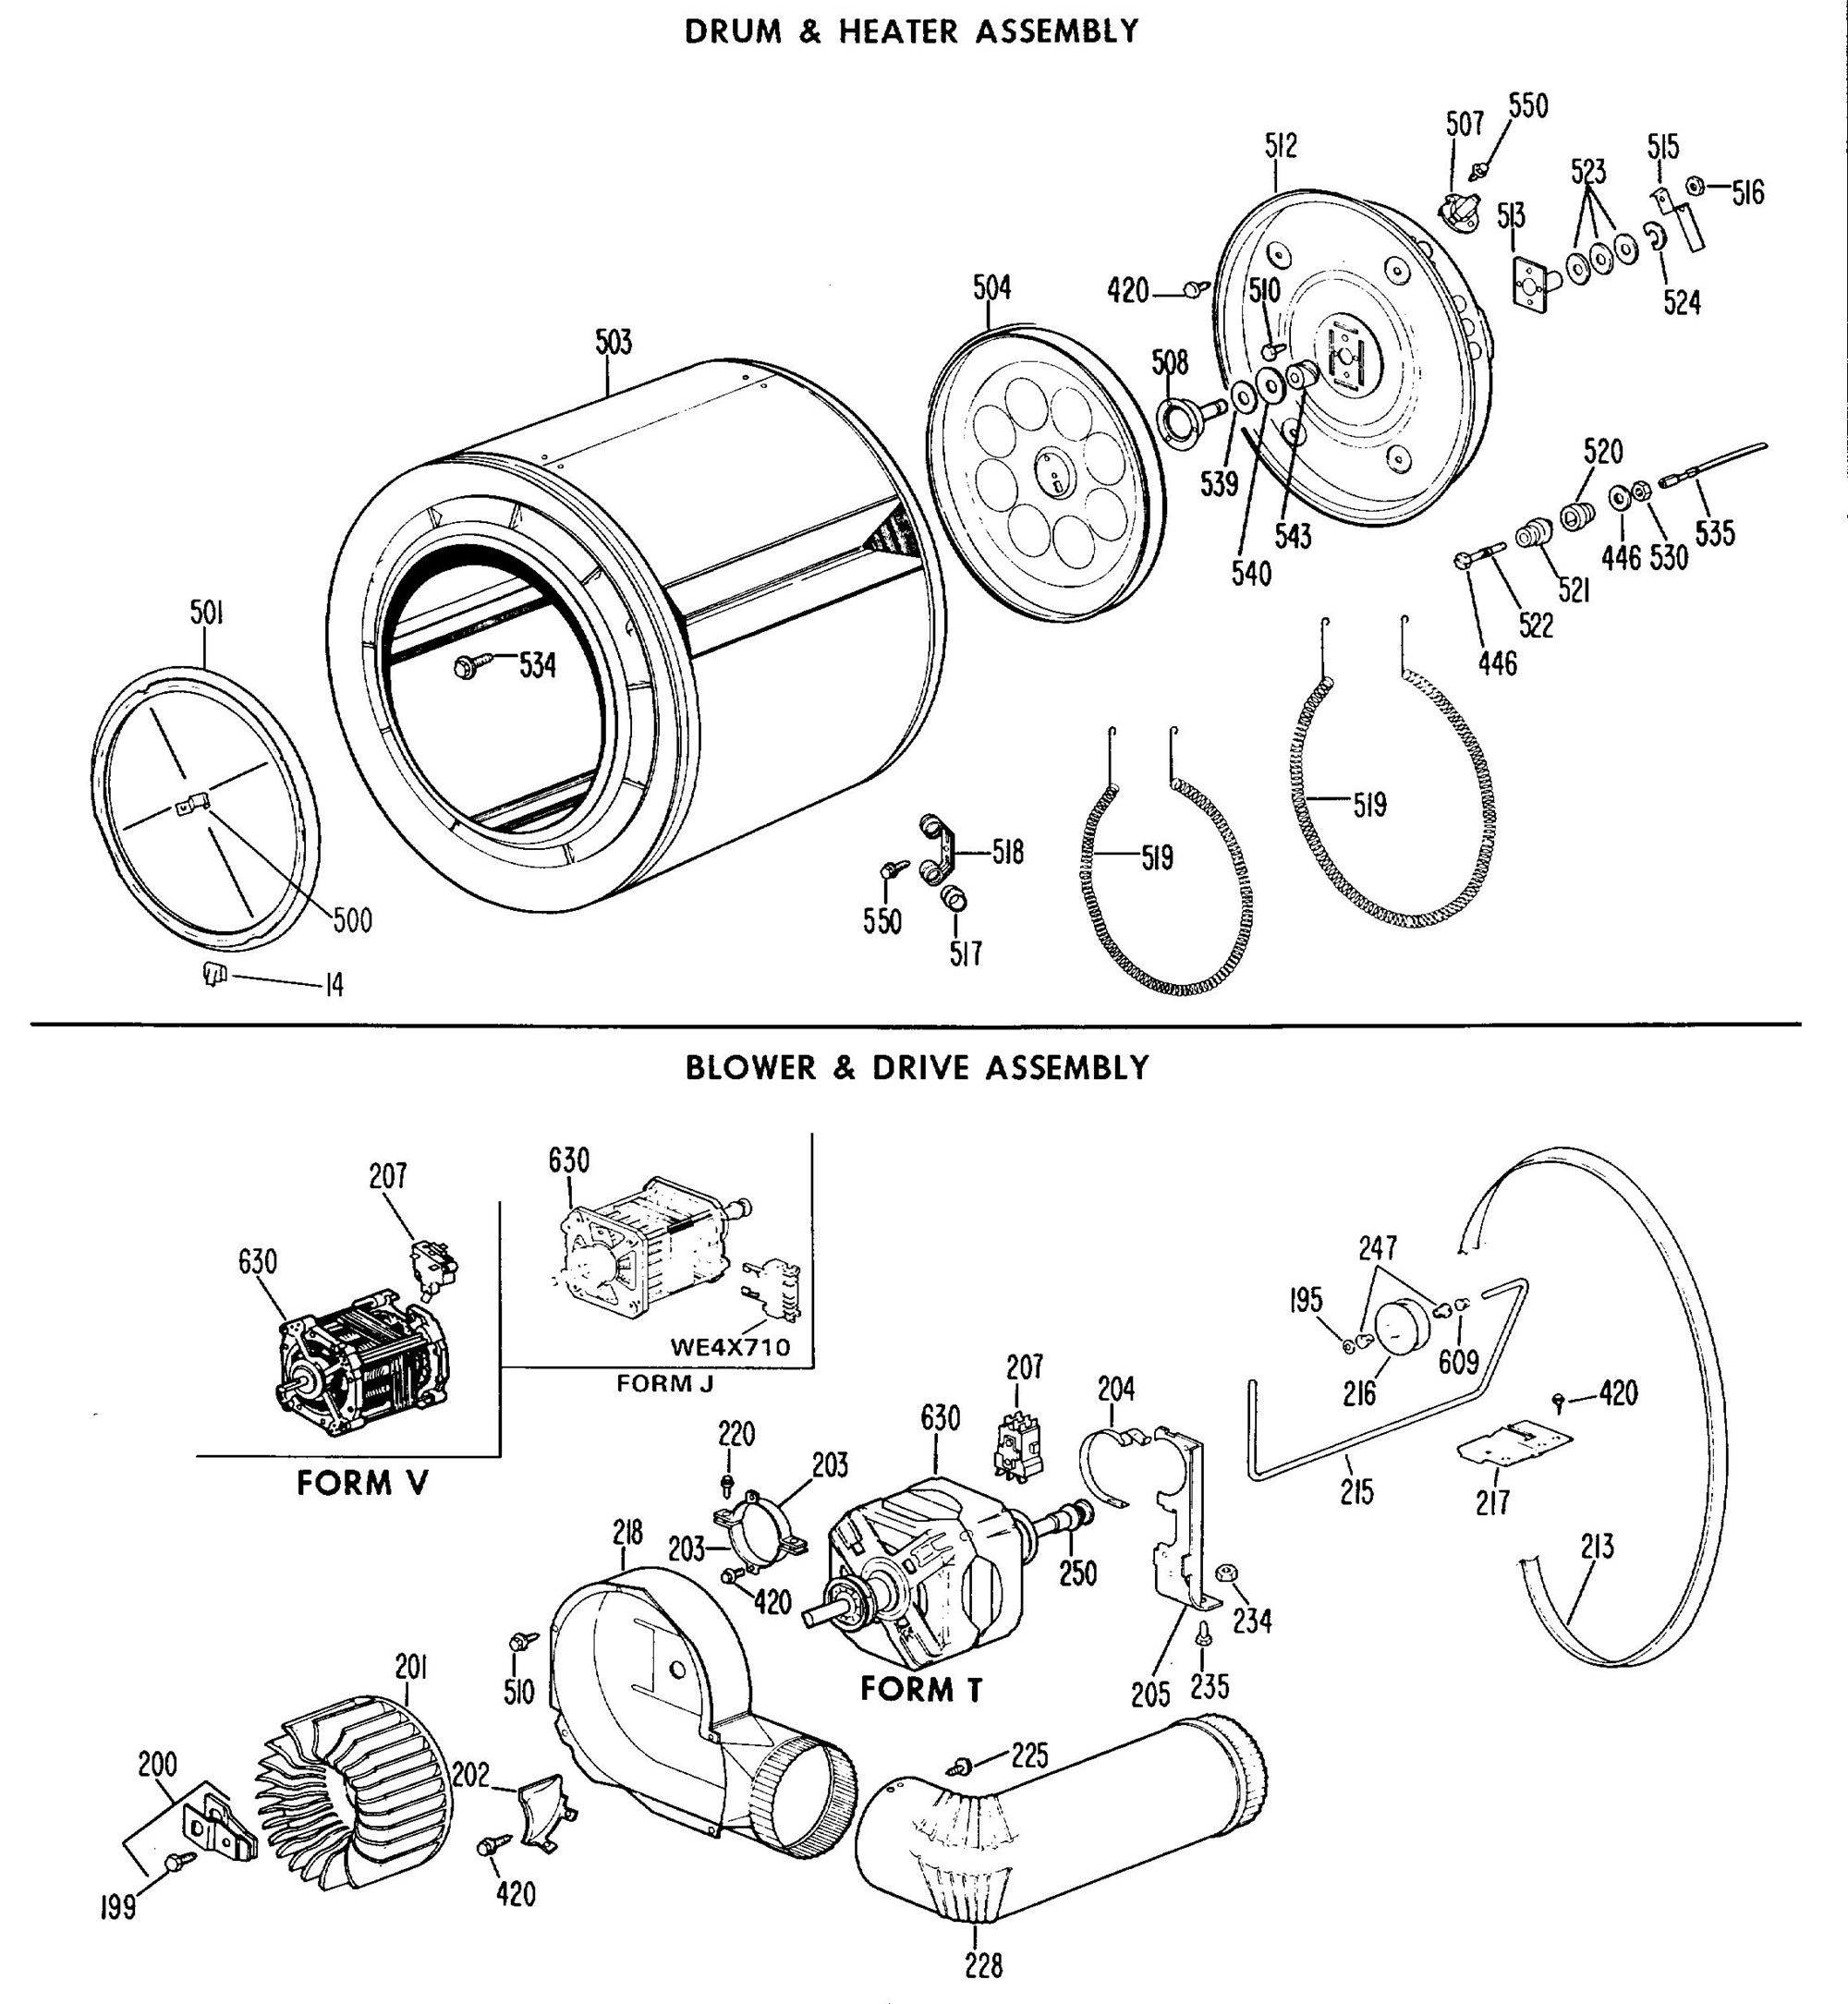 Dde7109vml drum heater assembly general electric appliance click to view diagram pooptronica Gallery